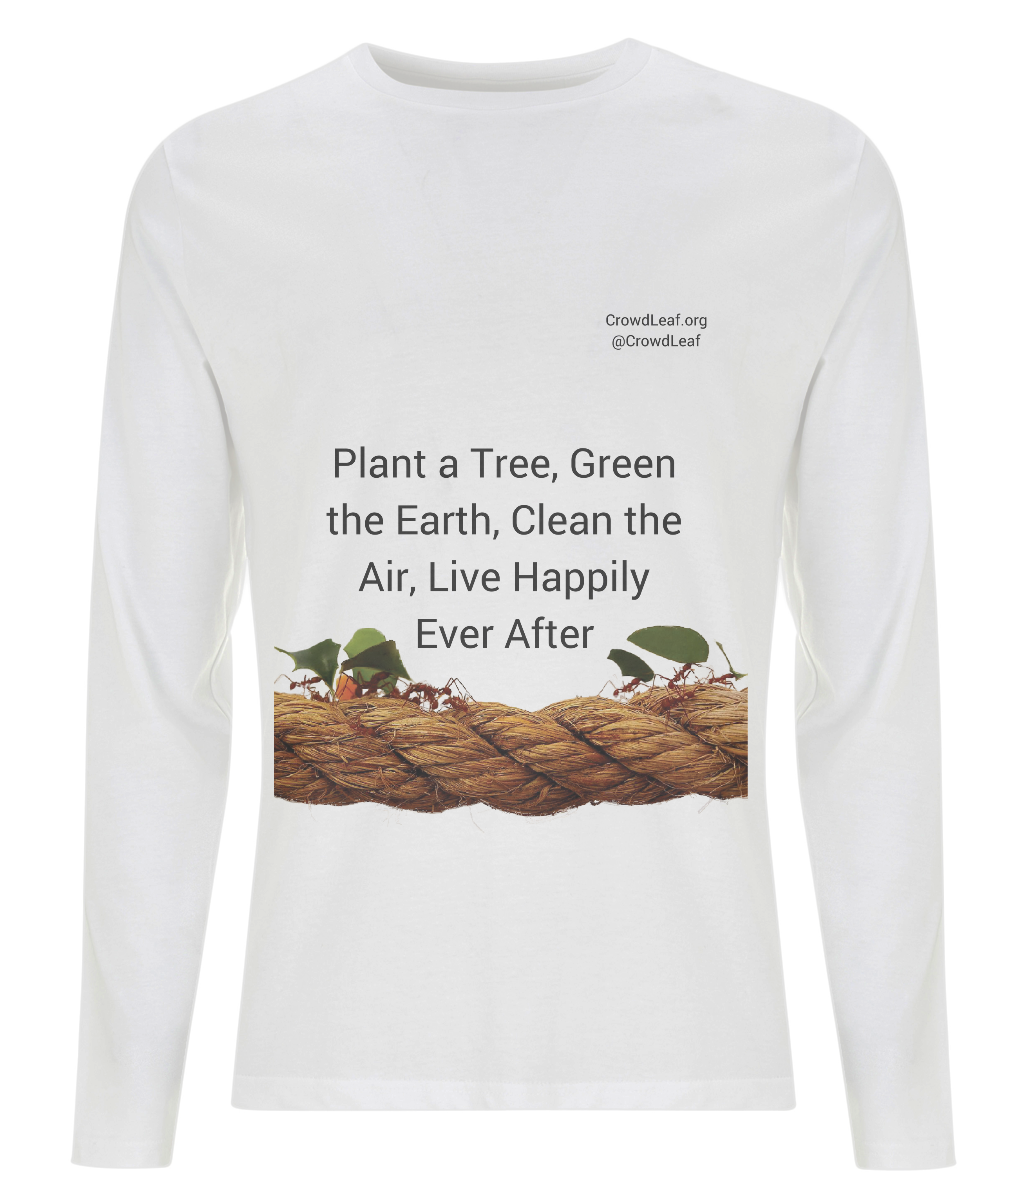 CrowdLeaf Men's Long Sleeve T-Shirt Plant a Tree, Green the Earth, Clean the Air, Live Happily Ever After - Black Type